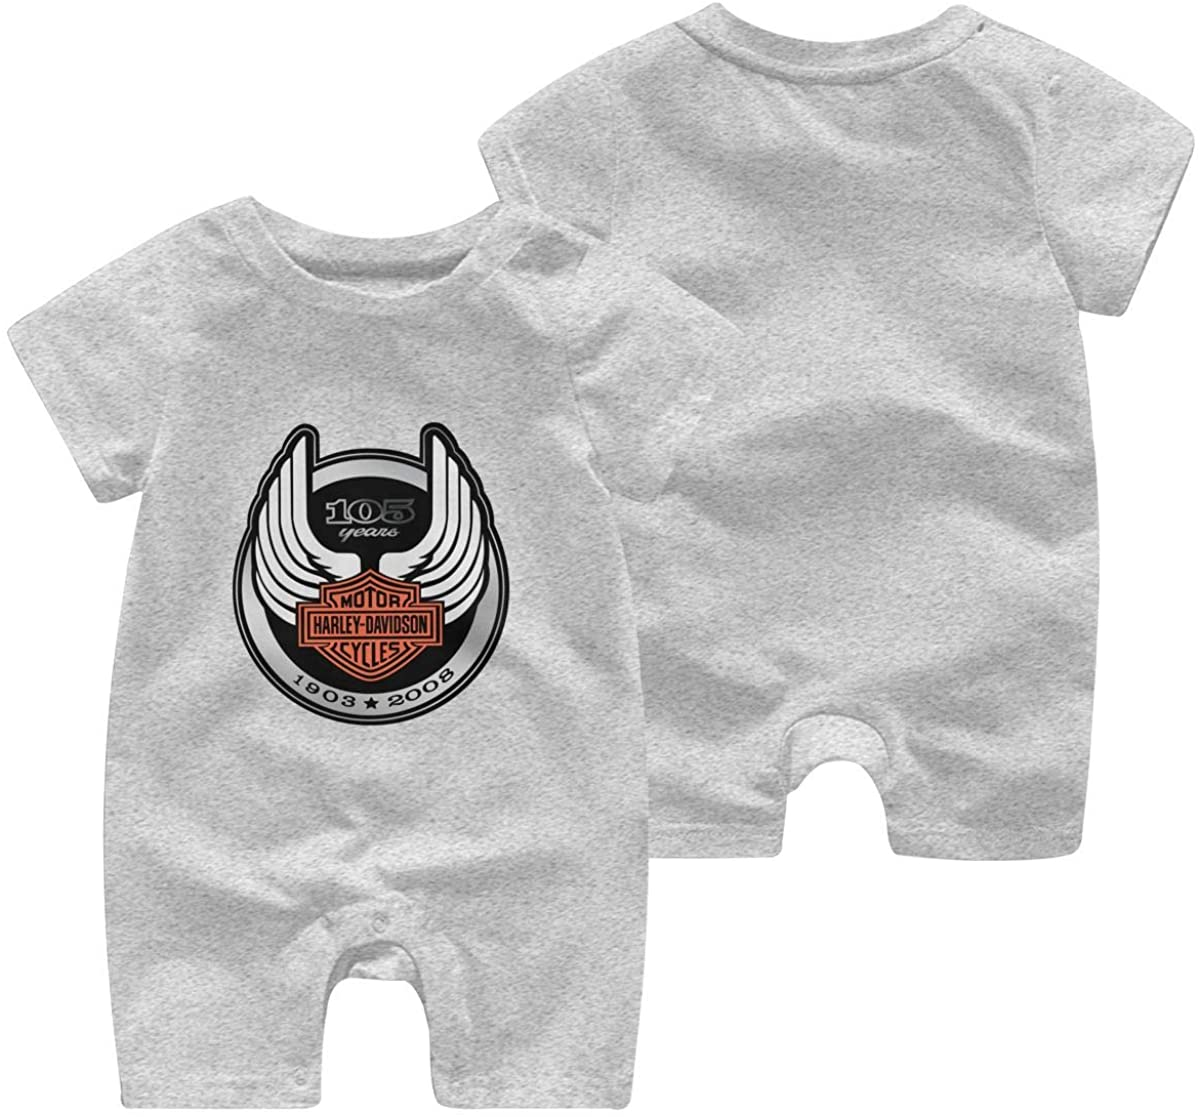 Harley Davidson One Piece Outfits Baby Solid Color Rompers with Button Kids Short Sleeve Playsuit Jumpsuits Cotton Clothing 18 Months Gray